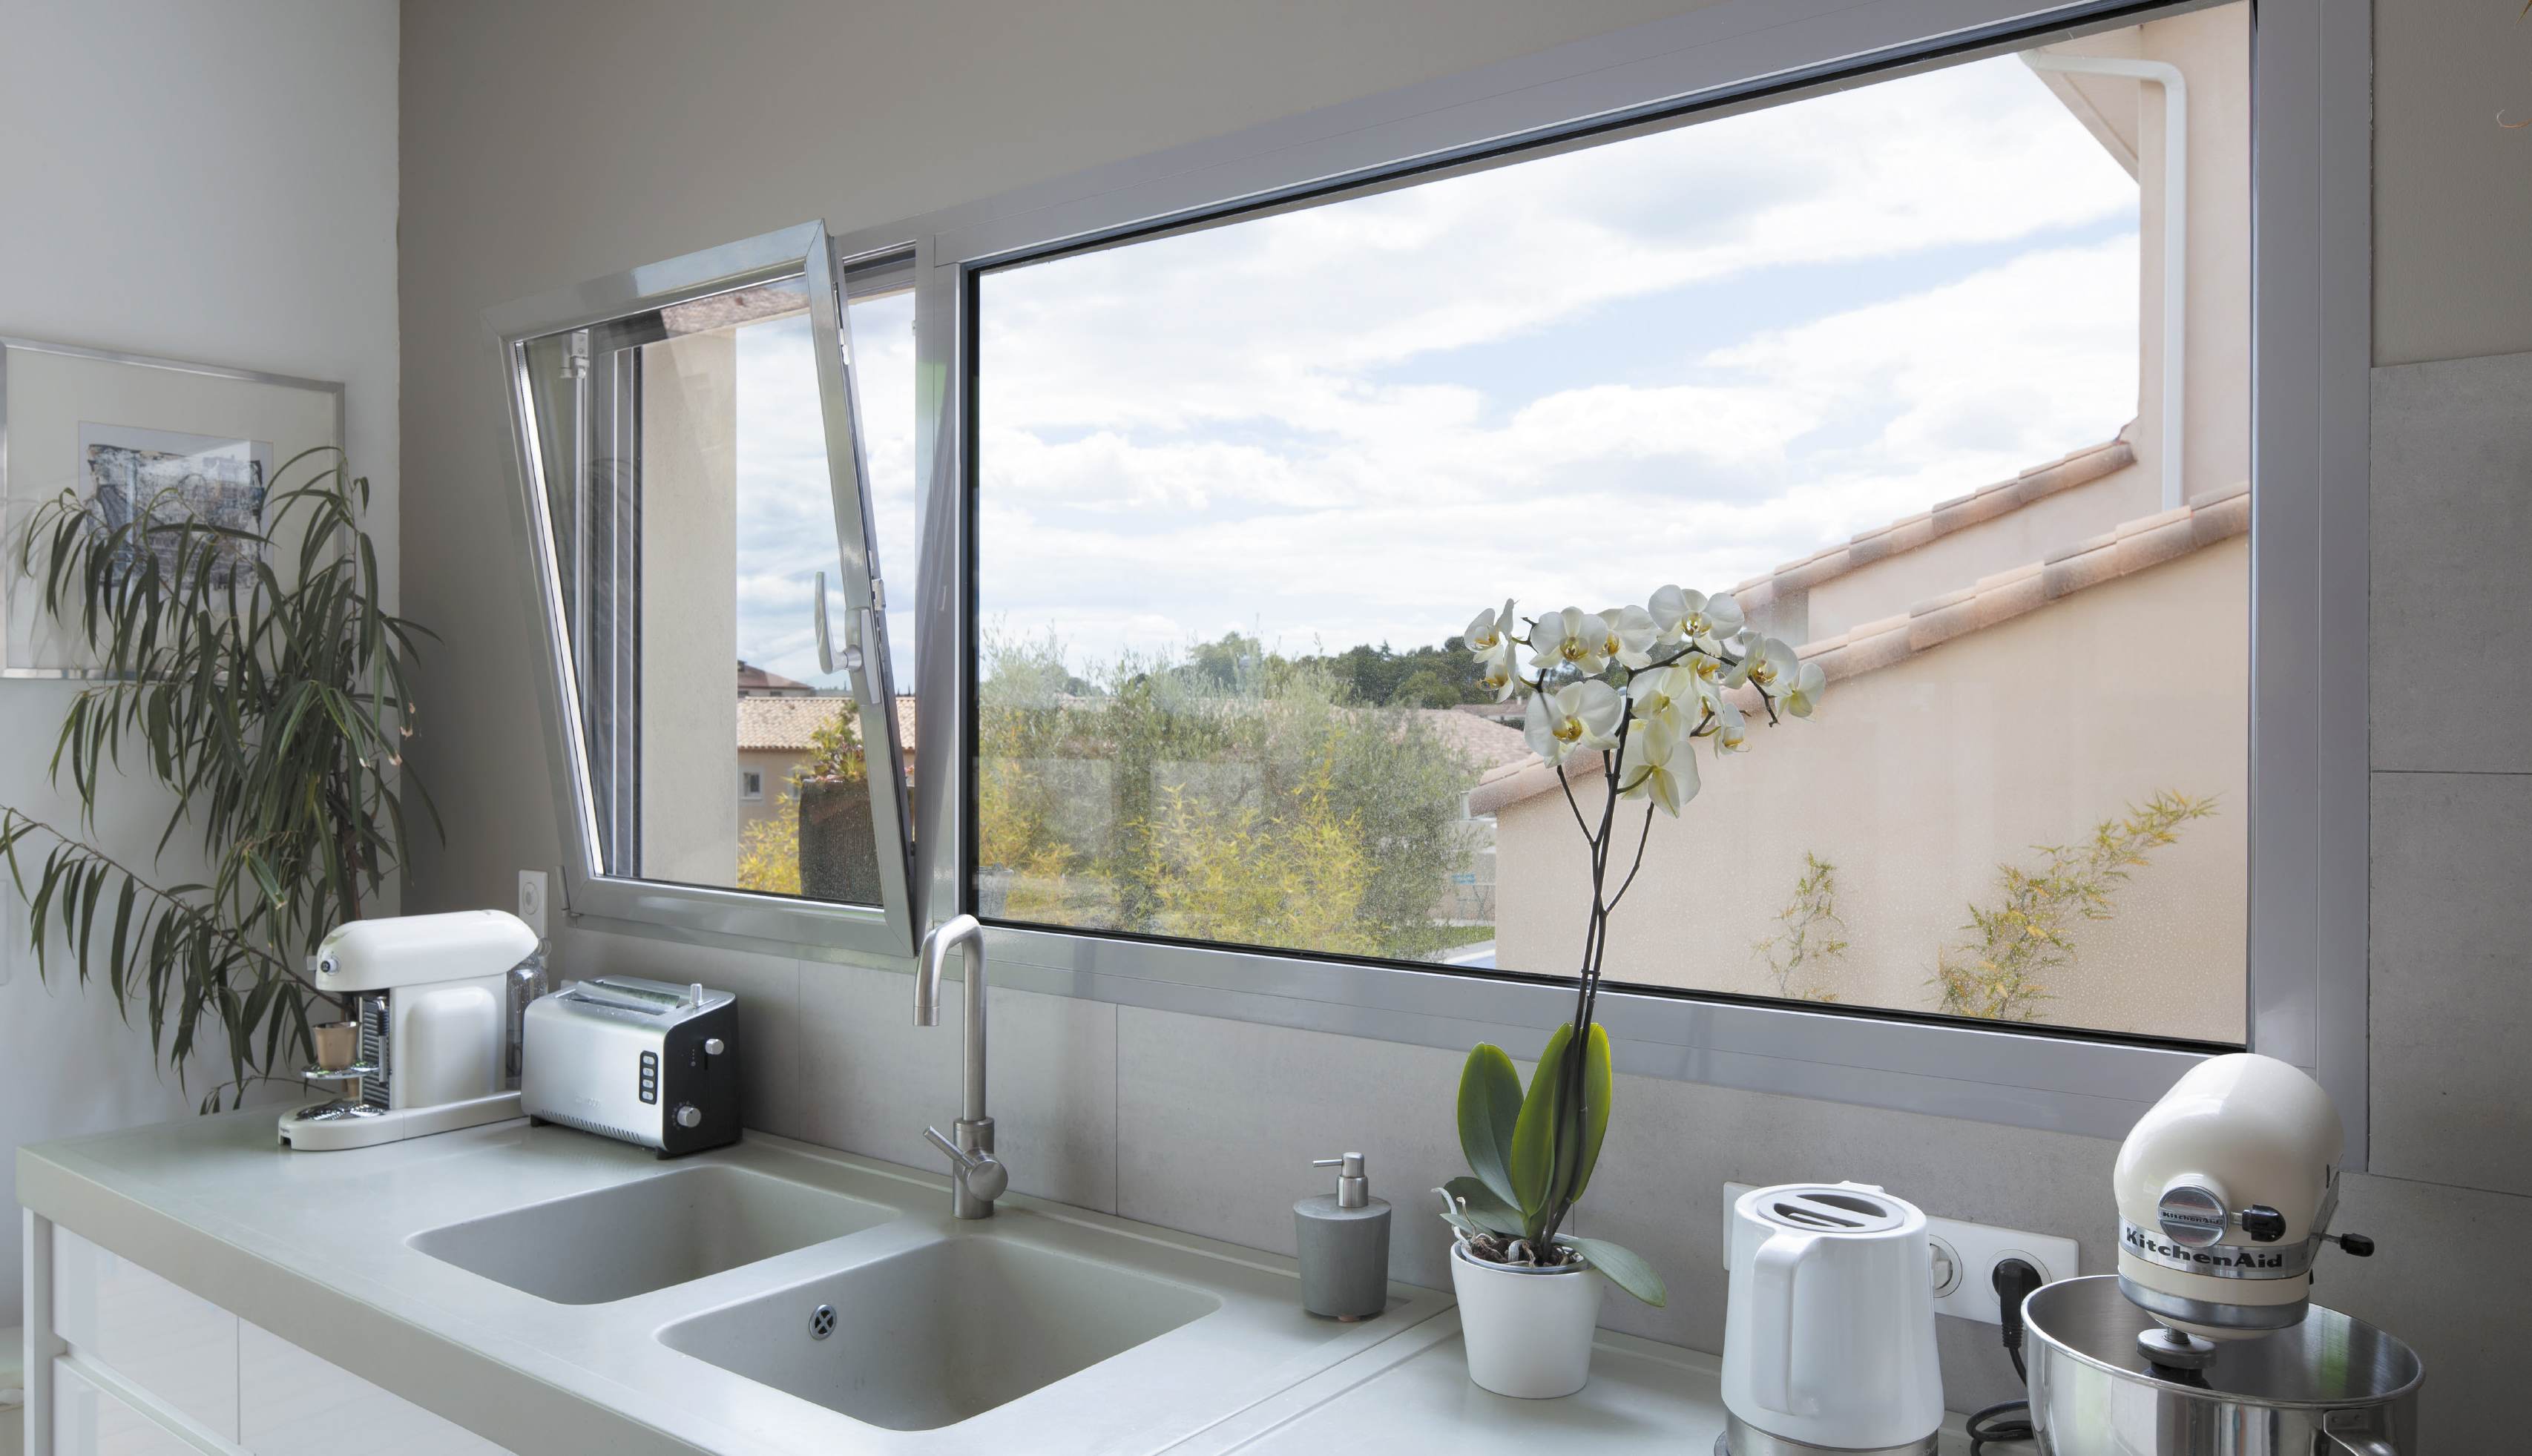 What are the Benefits of Double Glazing?